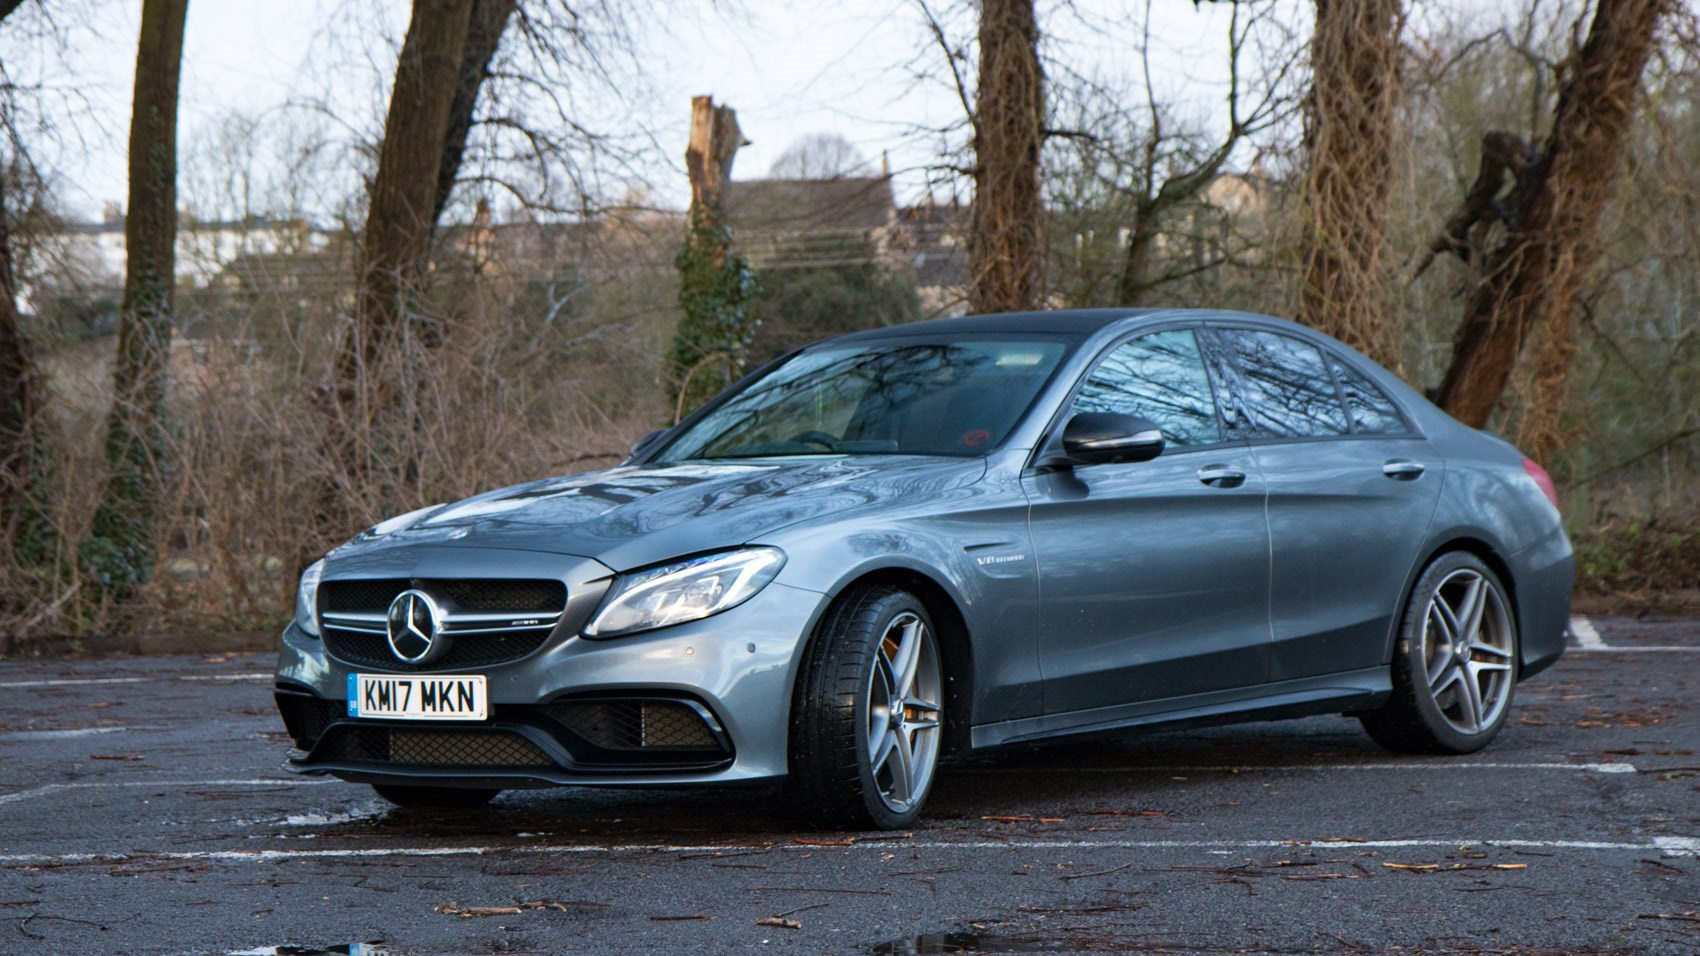 Mercedes Benz Lease Deals 0 Down >> Mercedes C63 S saloon review: Executive looks with supercar performance | CAR Magazine